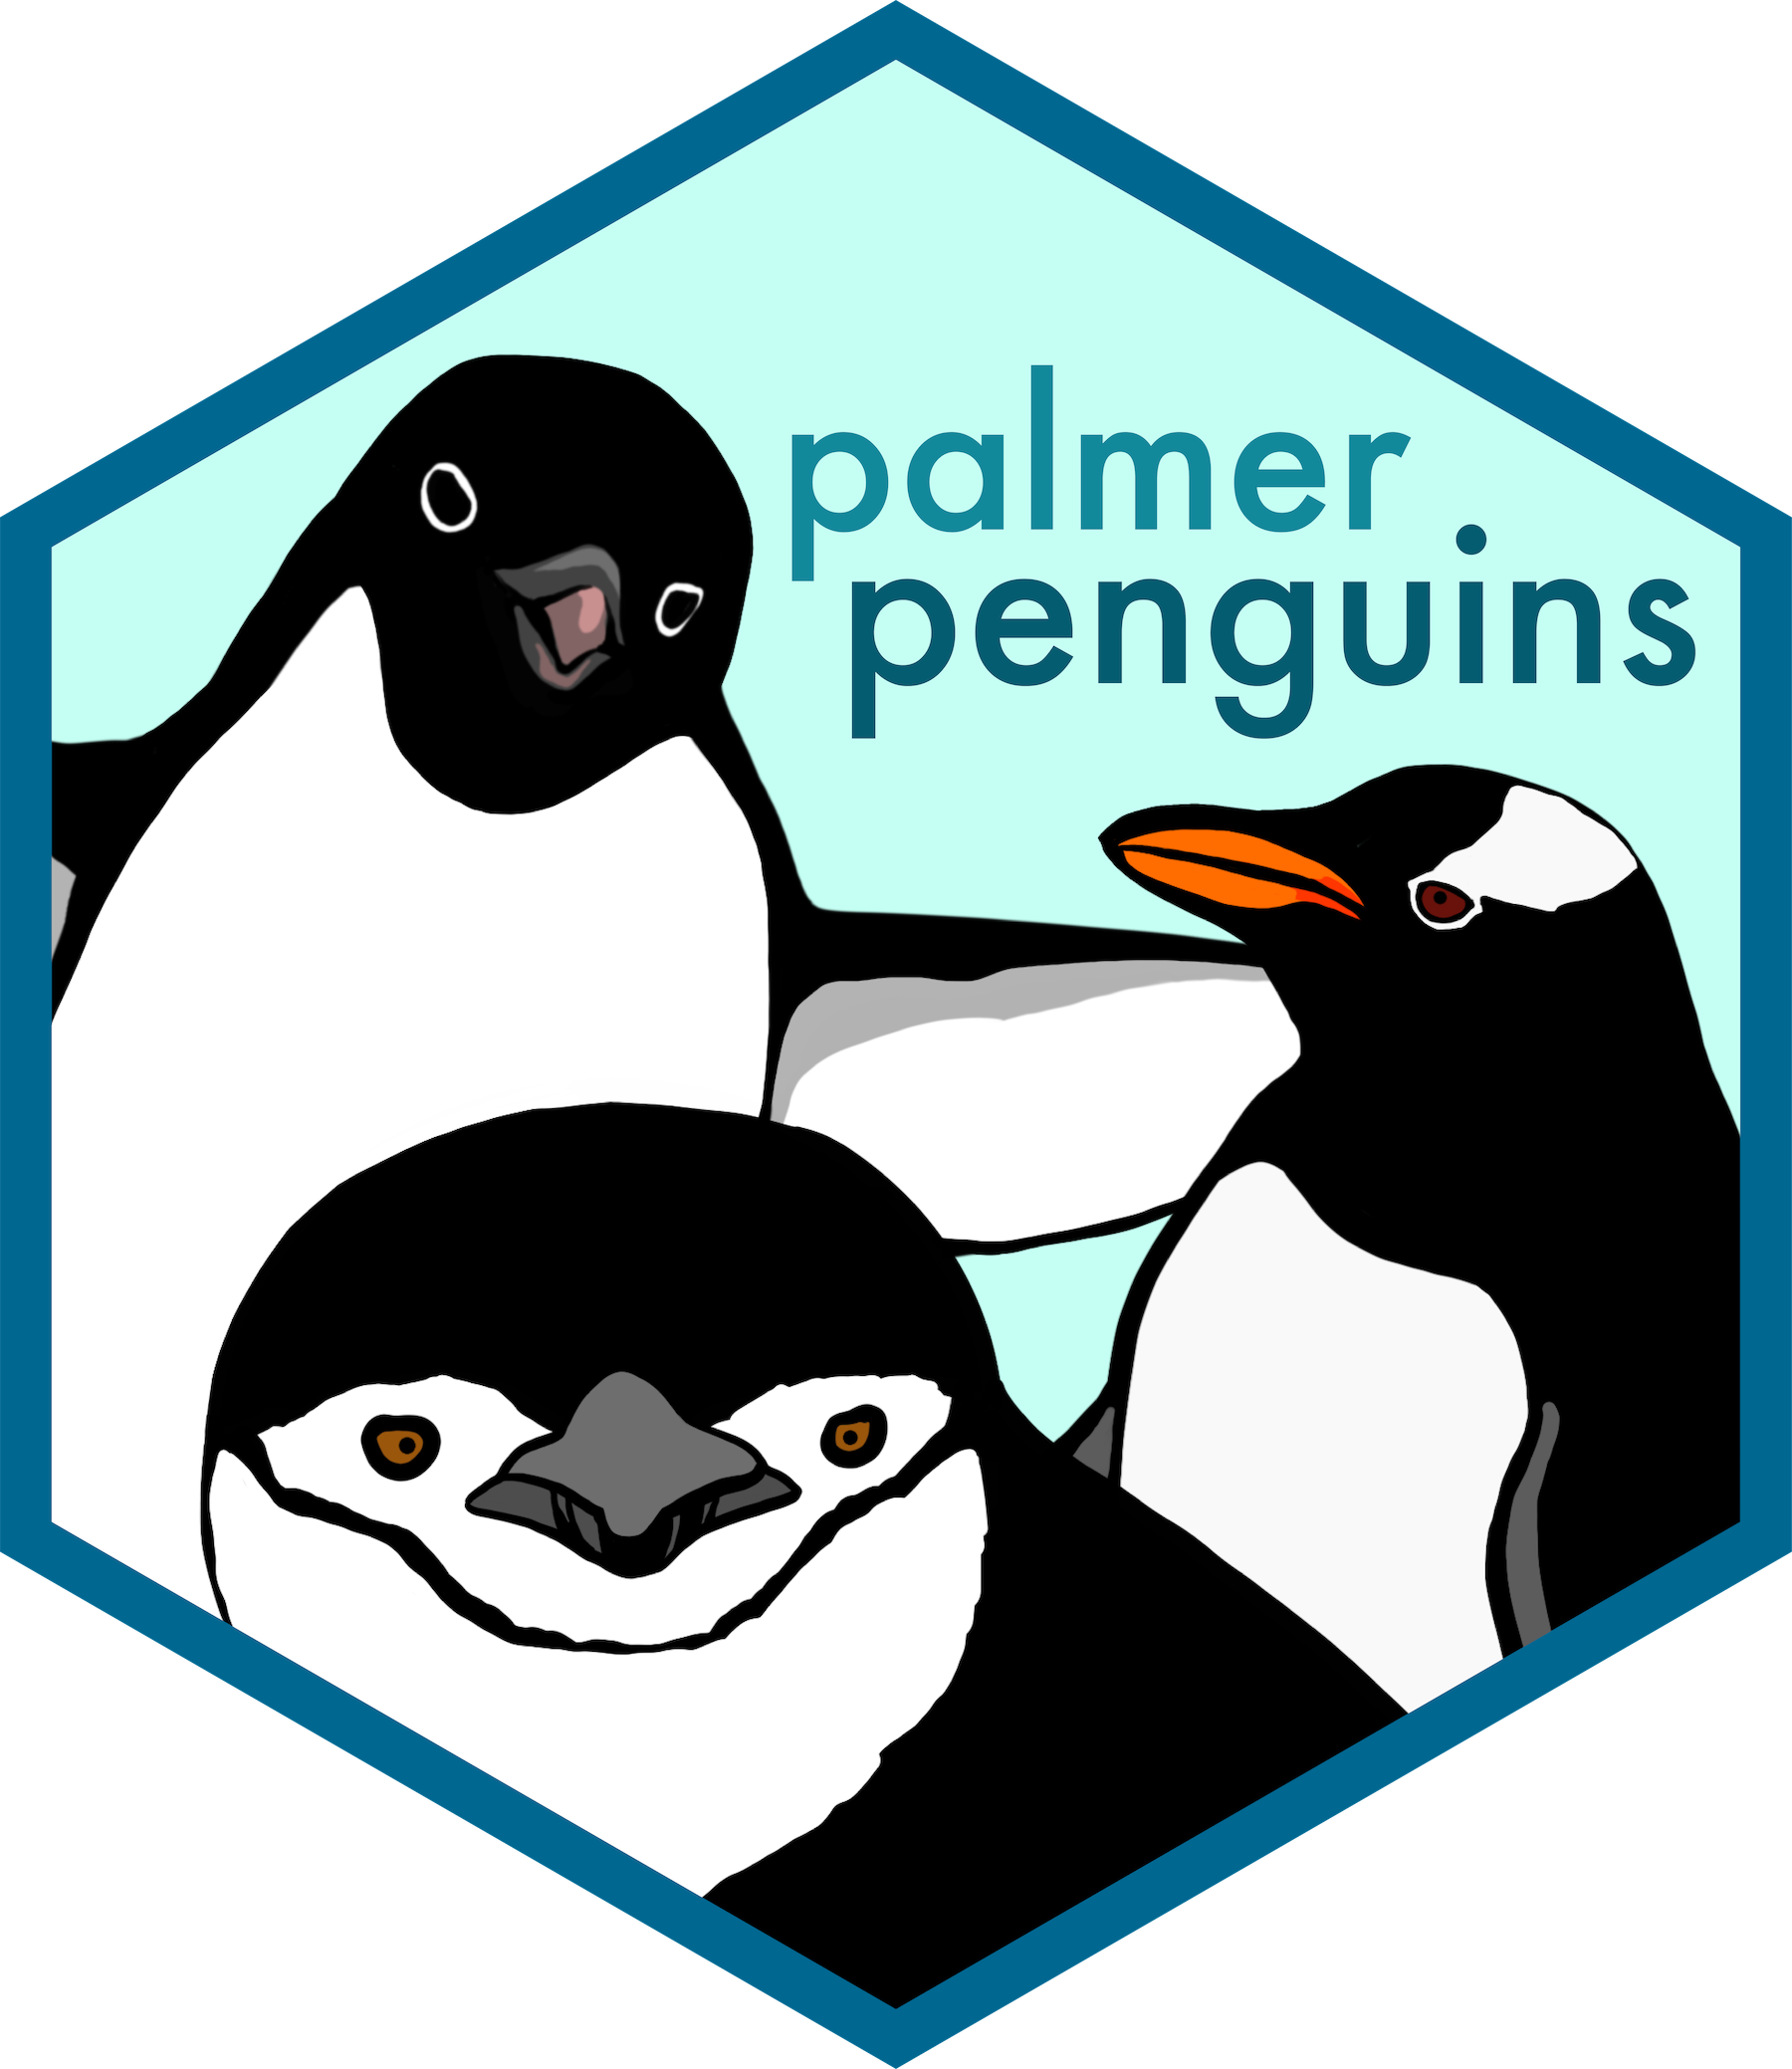 Palmer penguins hex logo